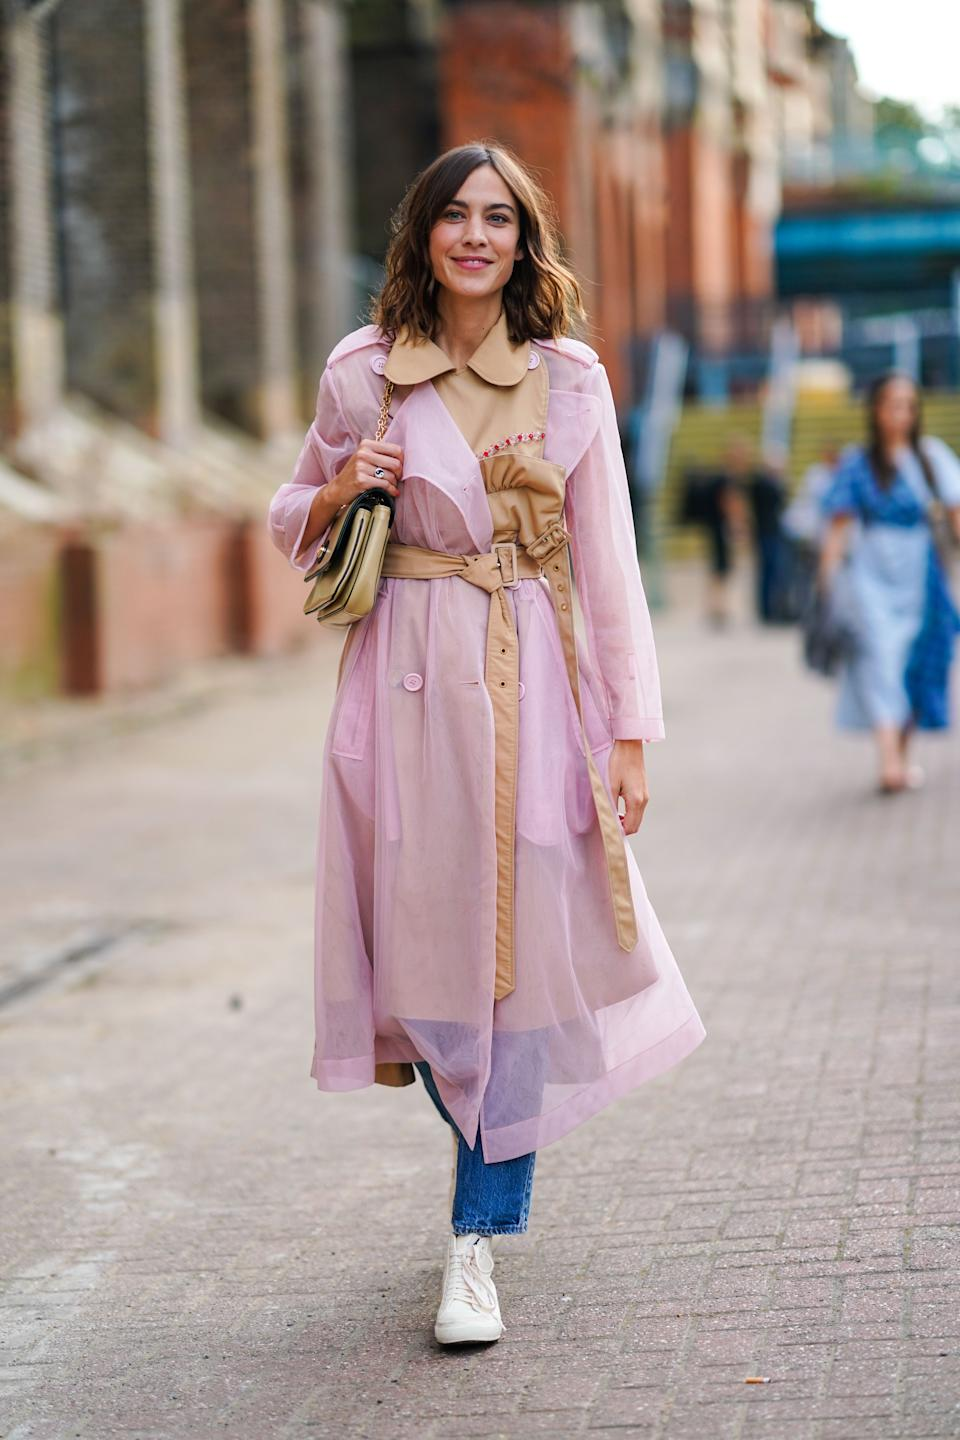 Alexa Chung is seen wearing a pale pink mesh trench coat and jeans. [Photo: Getty Images]